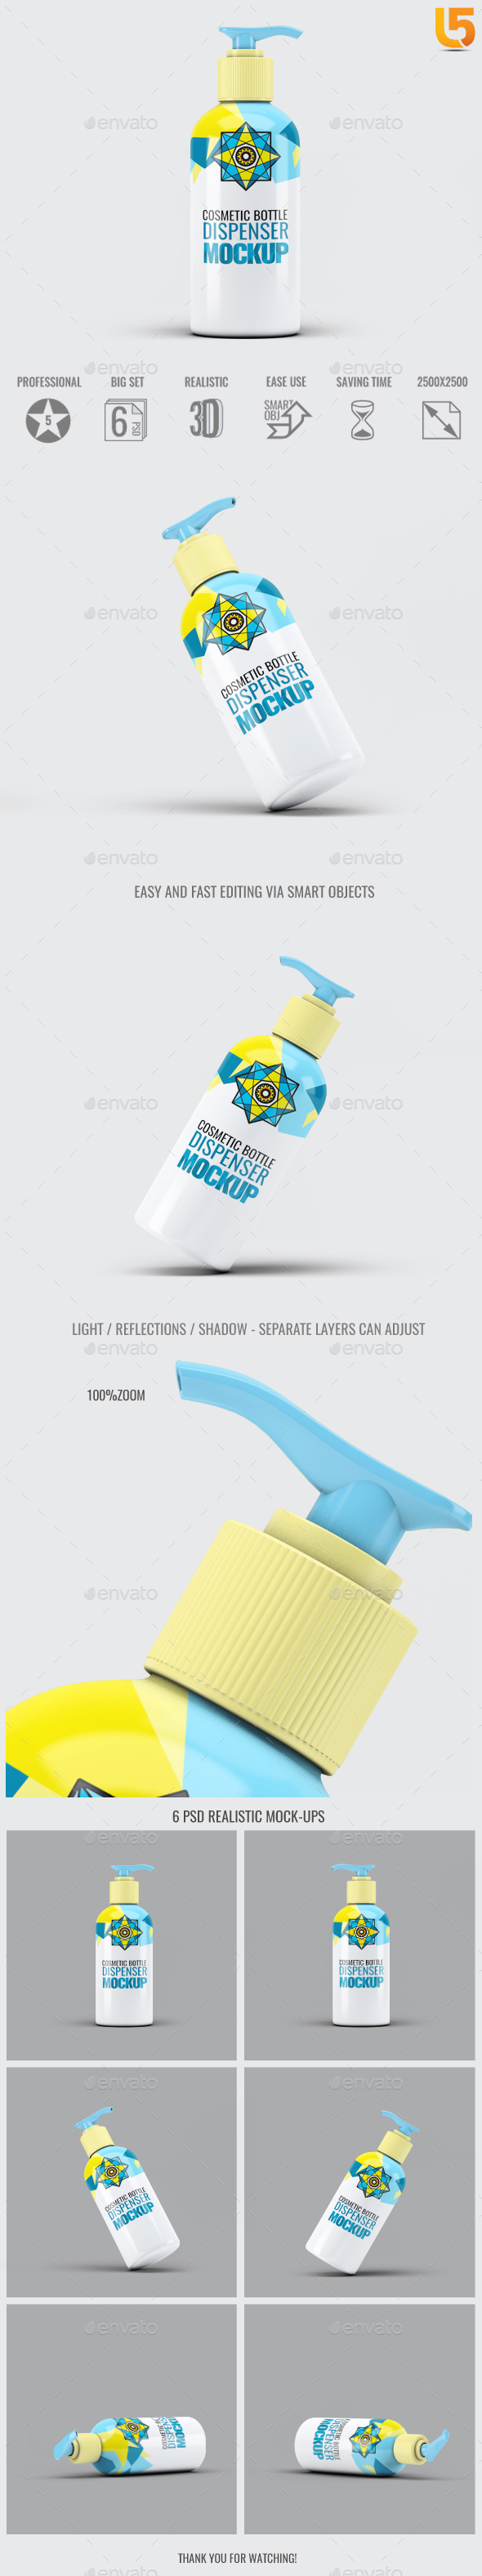 Cosmetic Bottle Dispenser Mock-Up V.4 - Beauty Packaging